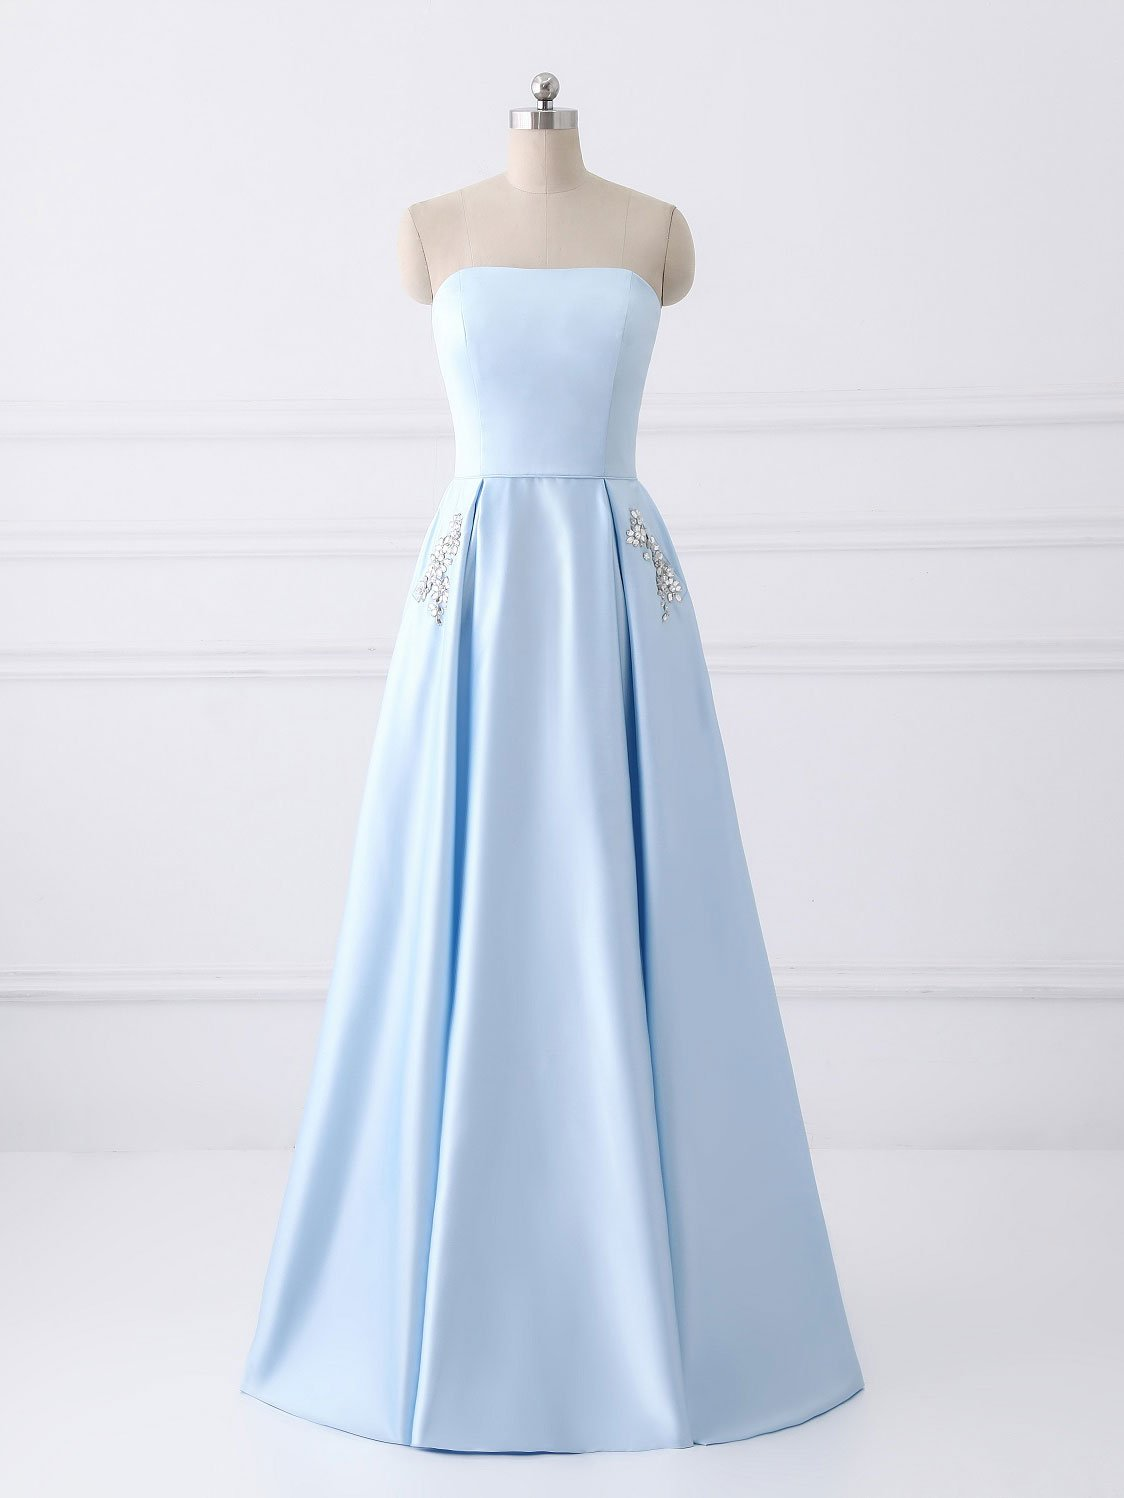 55b85997b98 Light Blue Strapless Party Dress - Gomes Weine AG